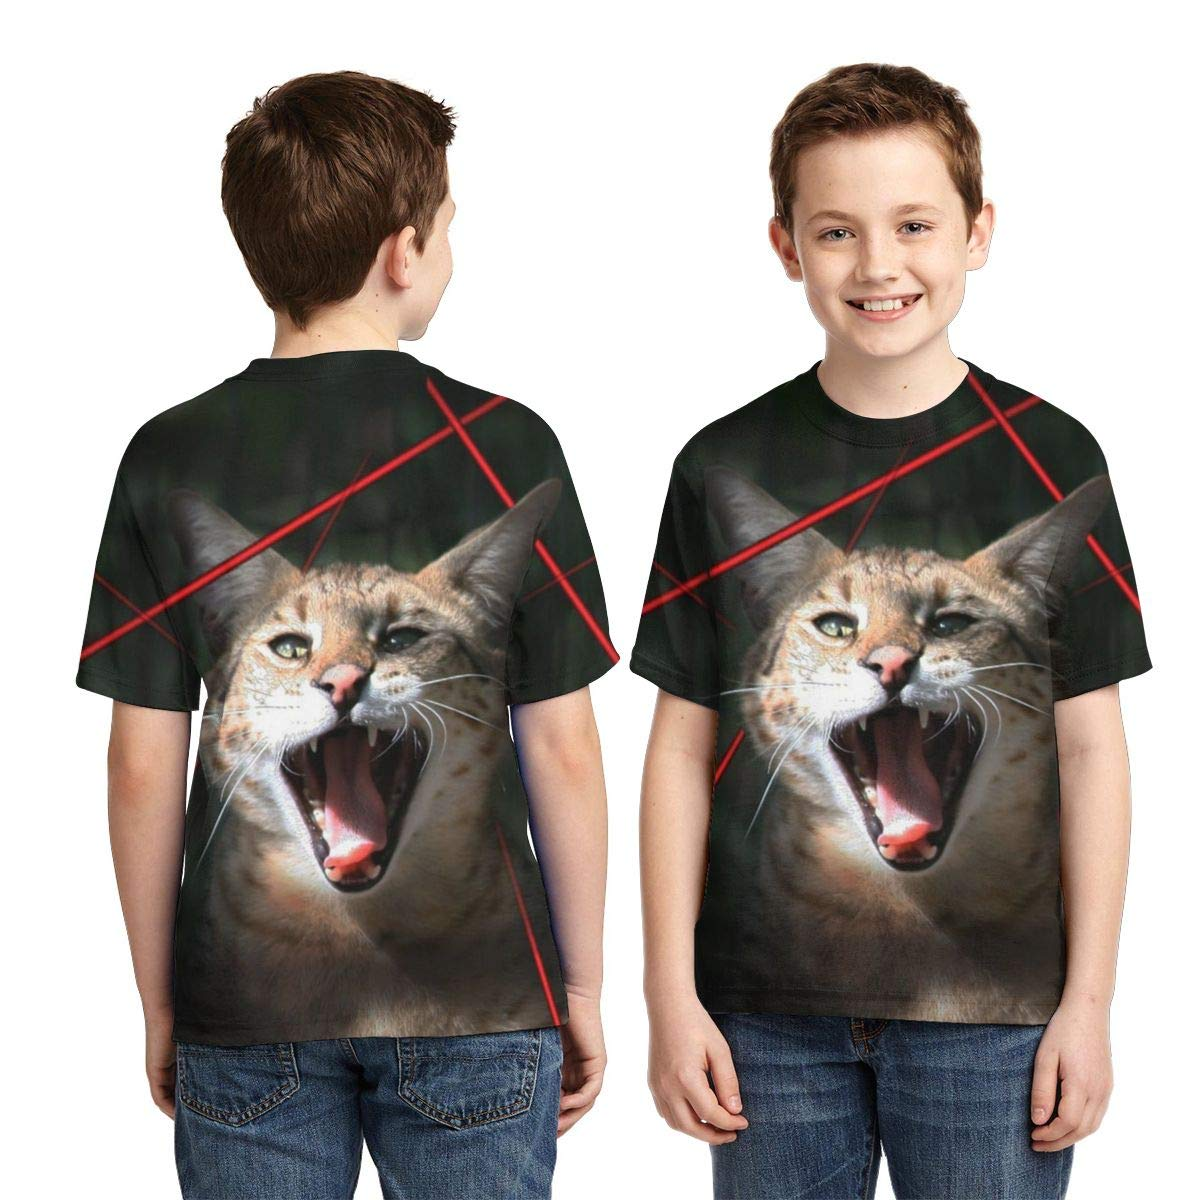 Big Cat Laser Pointers Kids Print Graphic Tee Short Sleeve T-Shirt